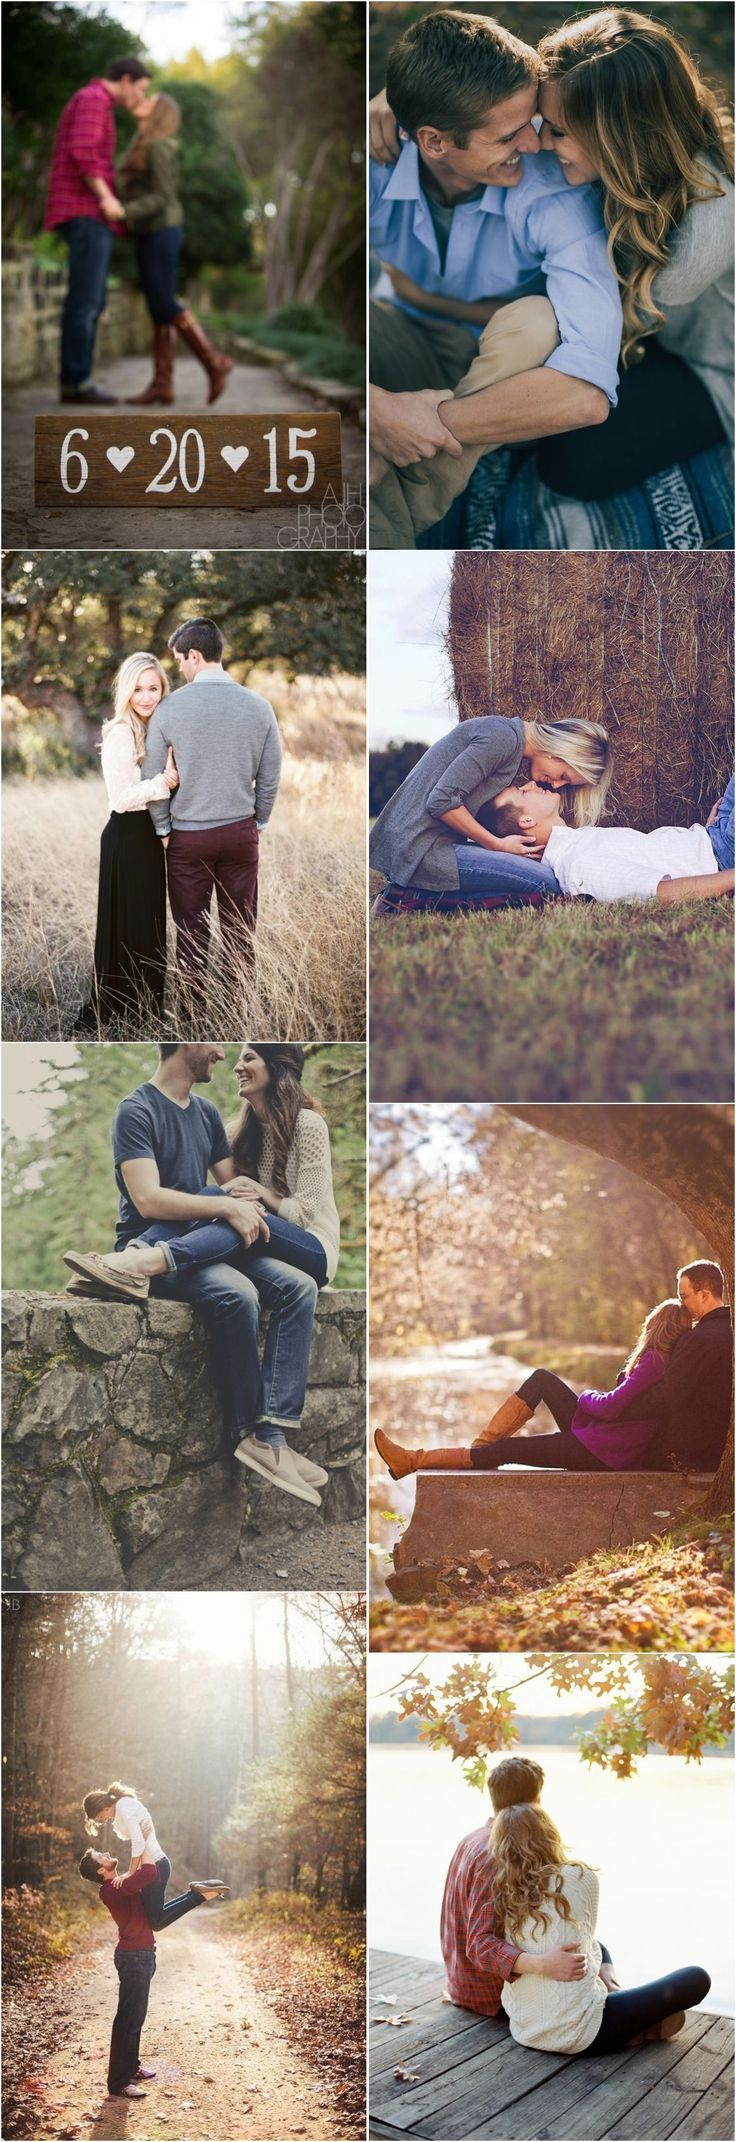 Autumn engagement photos shoot and pose ideas / www.deerpearlflow ... #dee ...